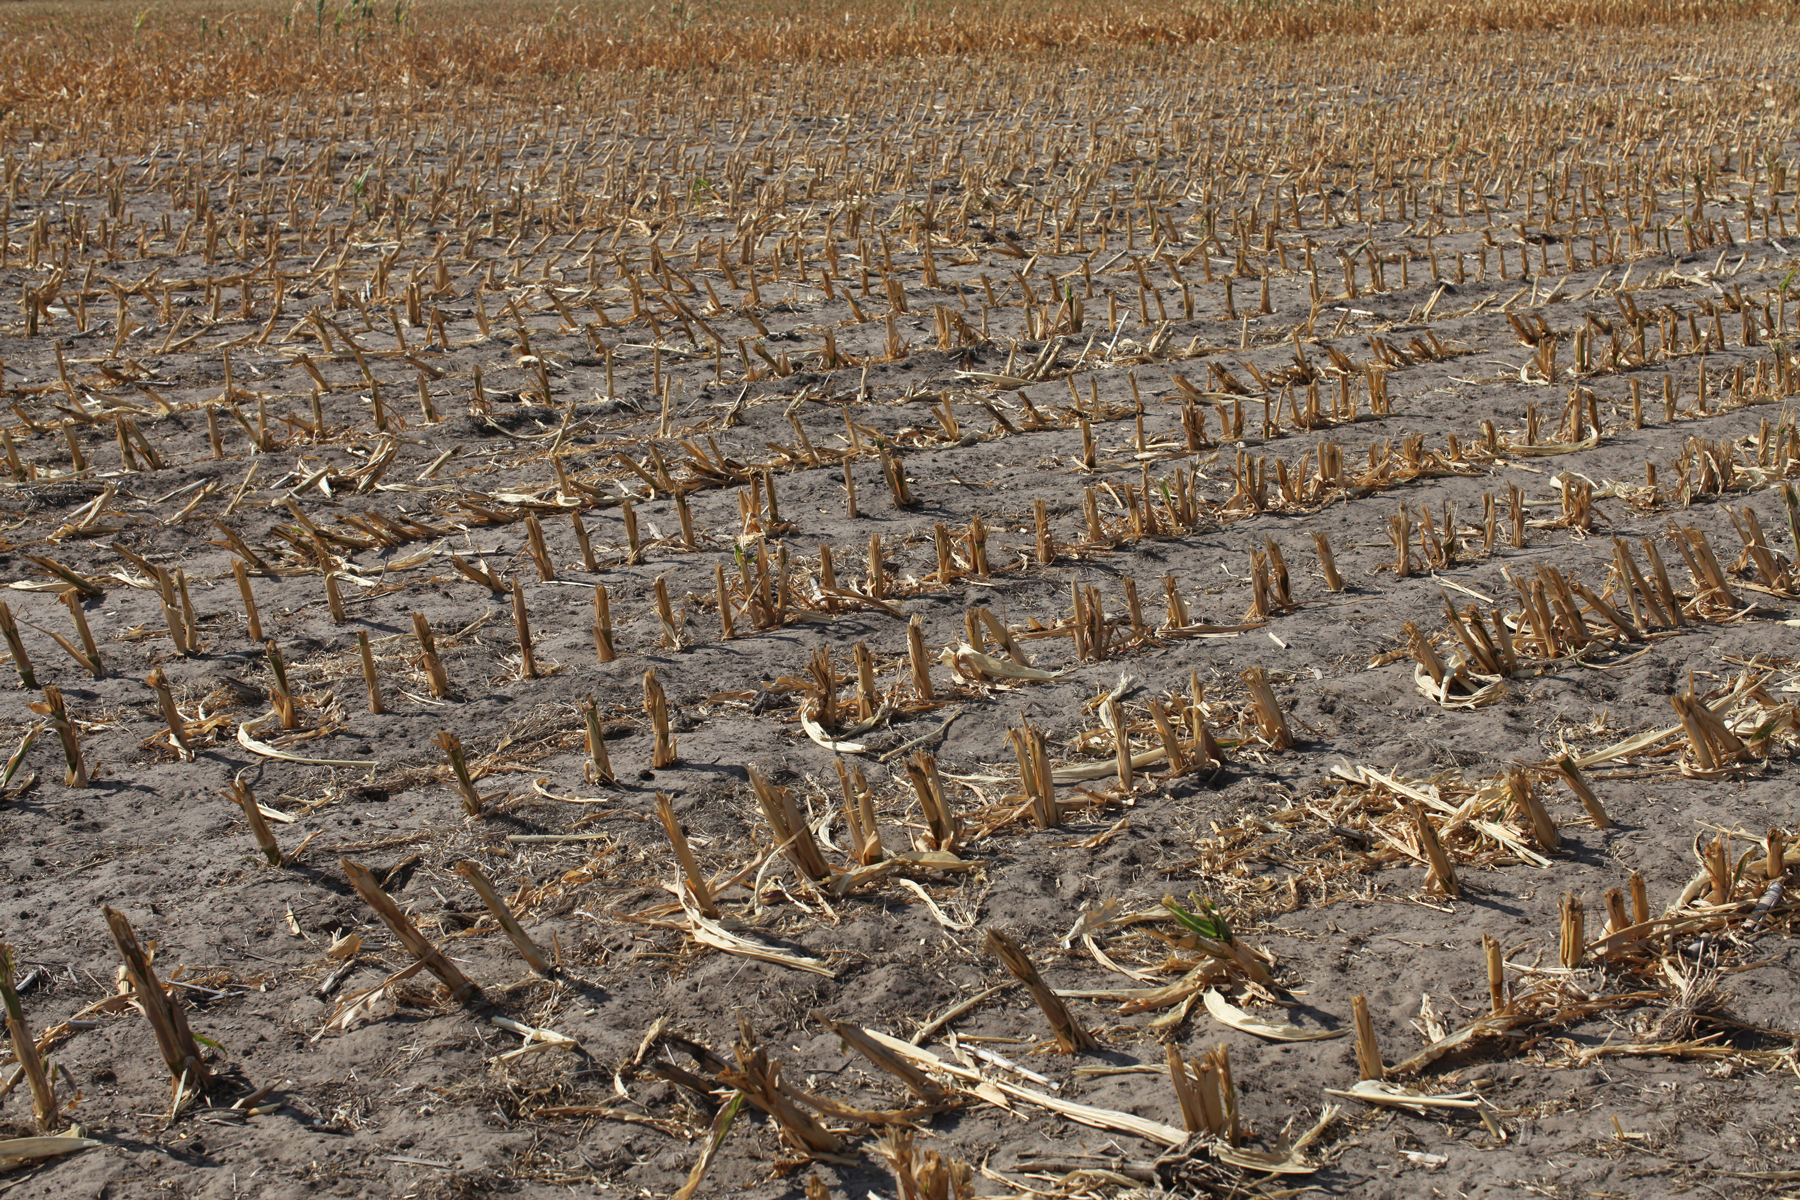 The stubs of corn stalks that were chopped down because heat and lack of rain ruined the crop, litter a field in Nebraska. 2012 saw the highest recorded temperatures in American history. Over the summer most of the mid-west experienced a tremendous drought, where hot weather and the lack of rain destroyed crops and grazing land. In the high plains of Western Nebraska's cattle lands, this created ideal conditions for wild fires, which spread across the land sparked by single bolts of lightning. (Photo by Andrew Lichtenstein/Corbis via Getty Images)